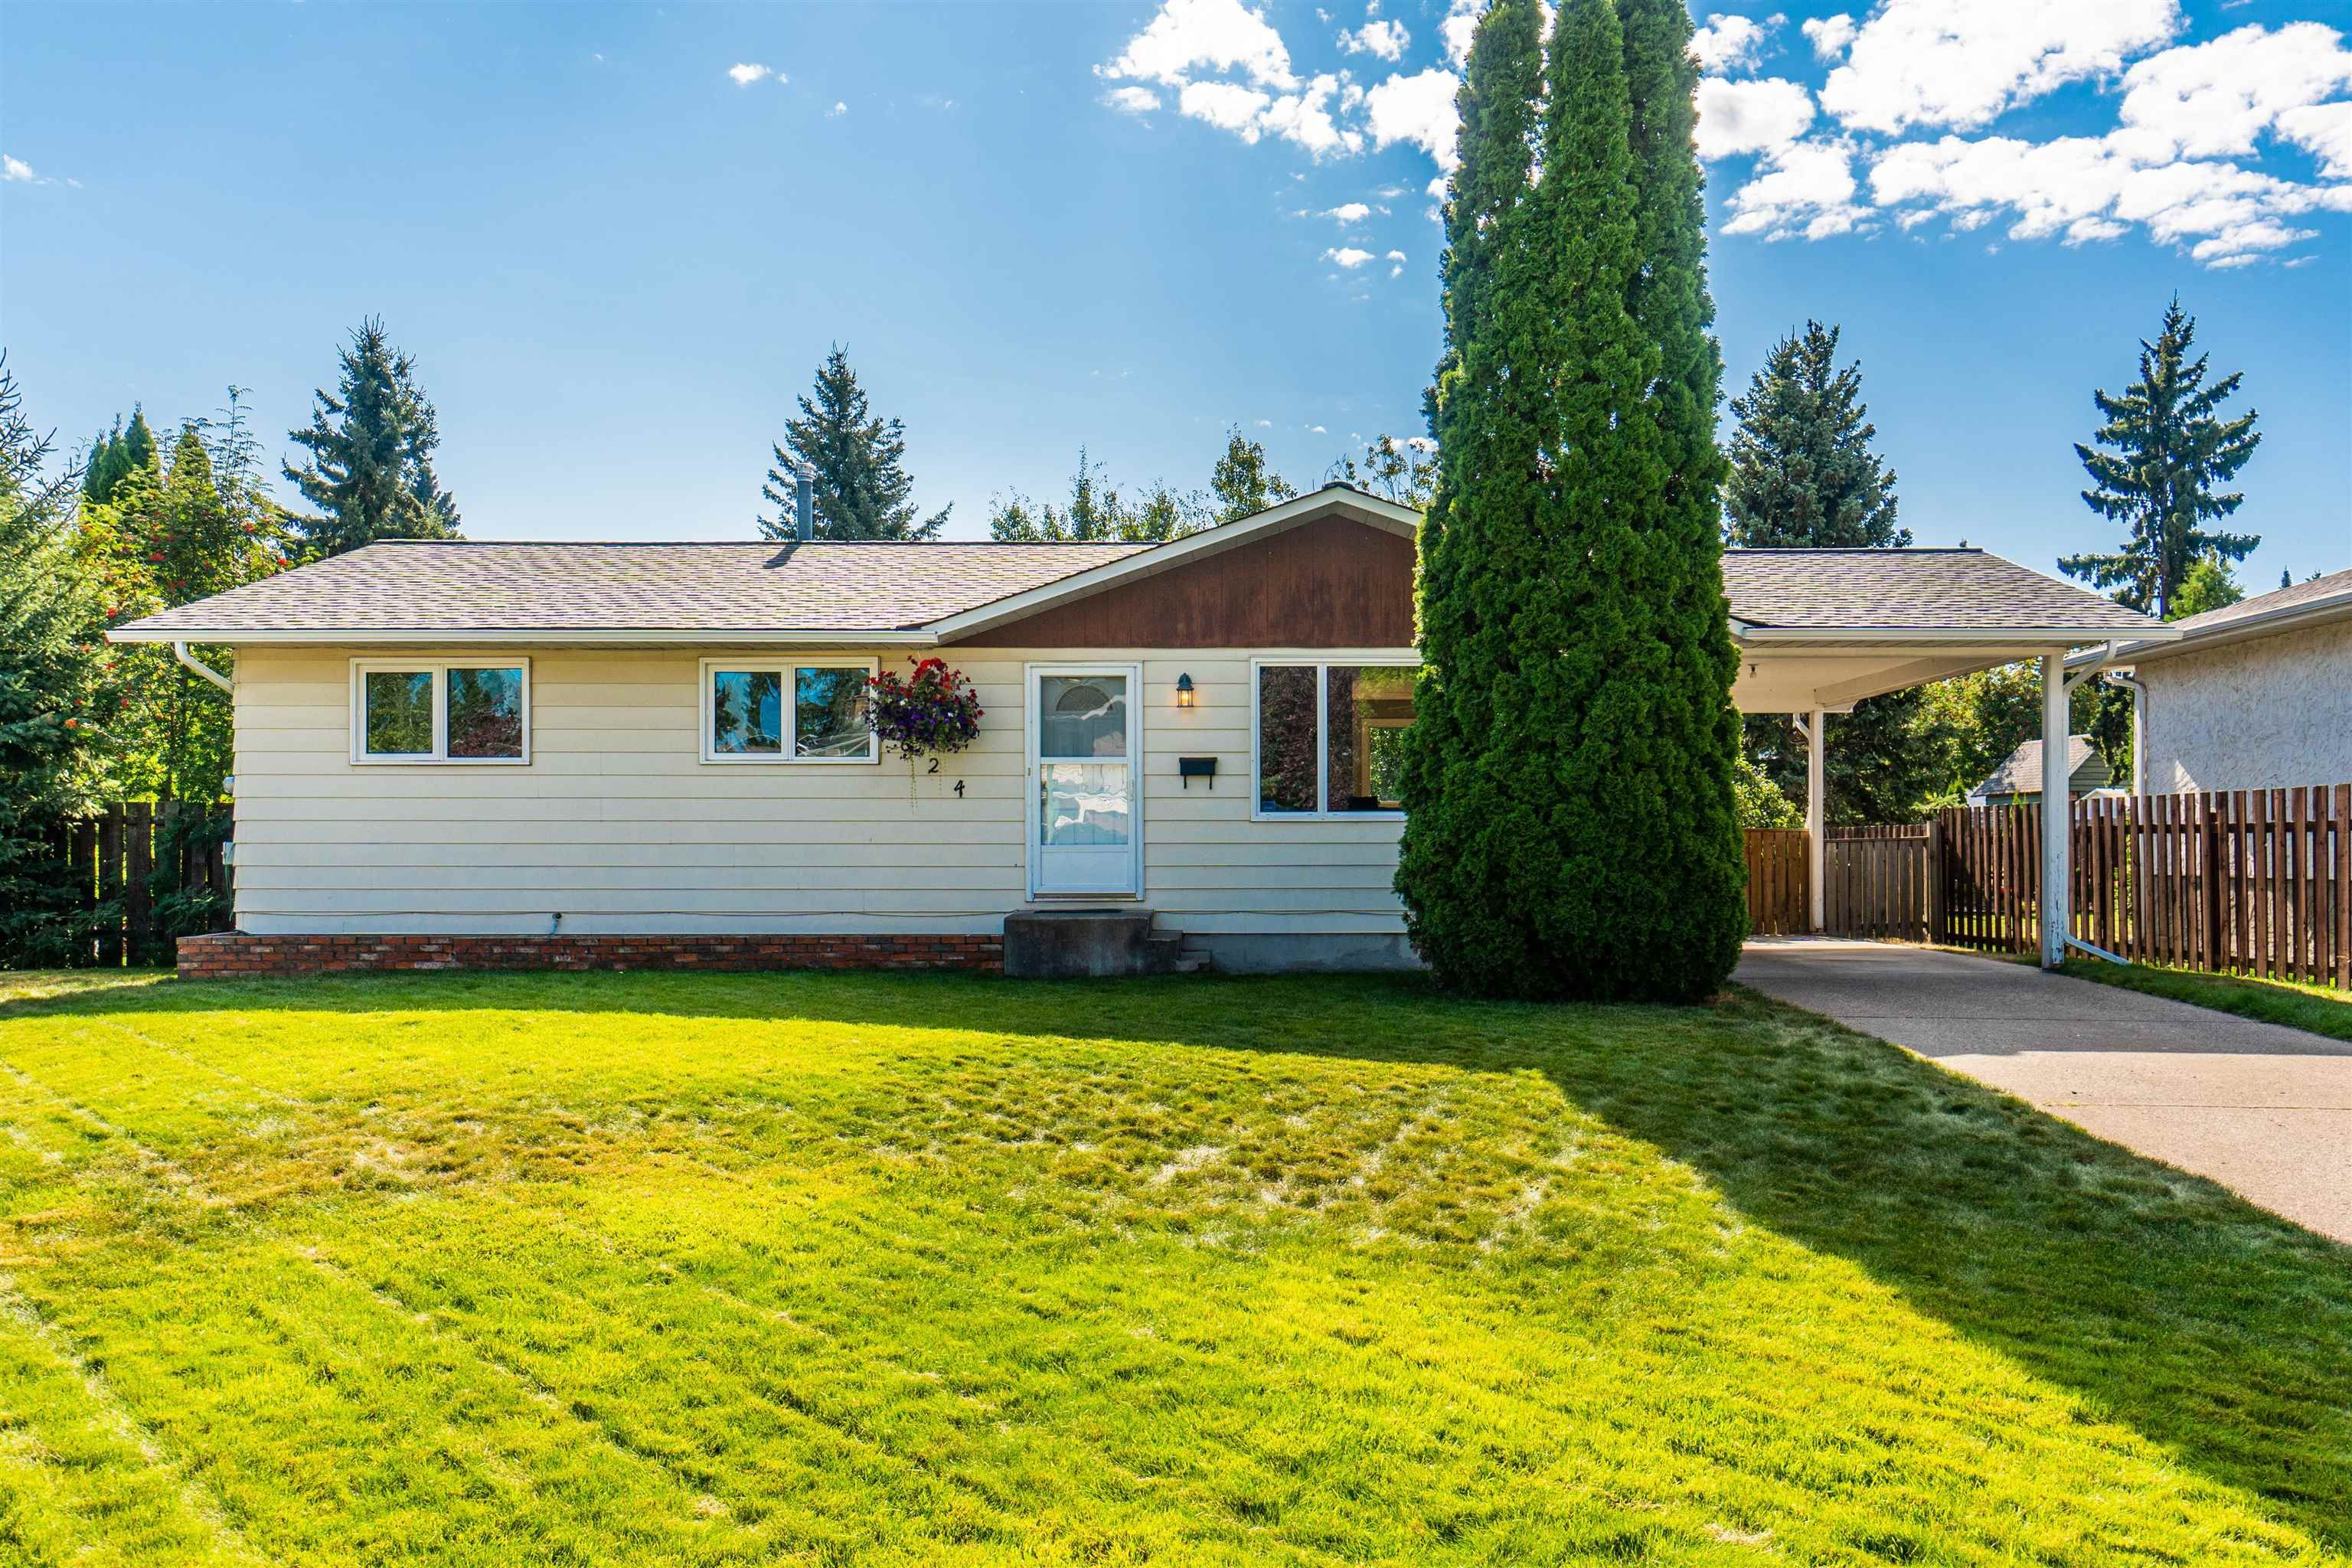 Main Photo: 624 KERRY Street in Prince George: Lakewood House for sale (PG City West (Zone 71))  : MLS®# R2612111